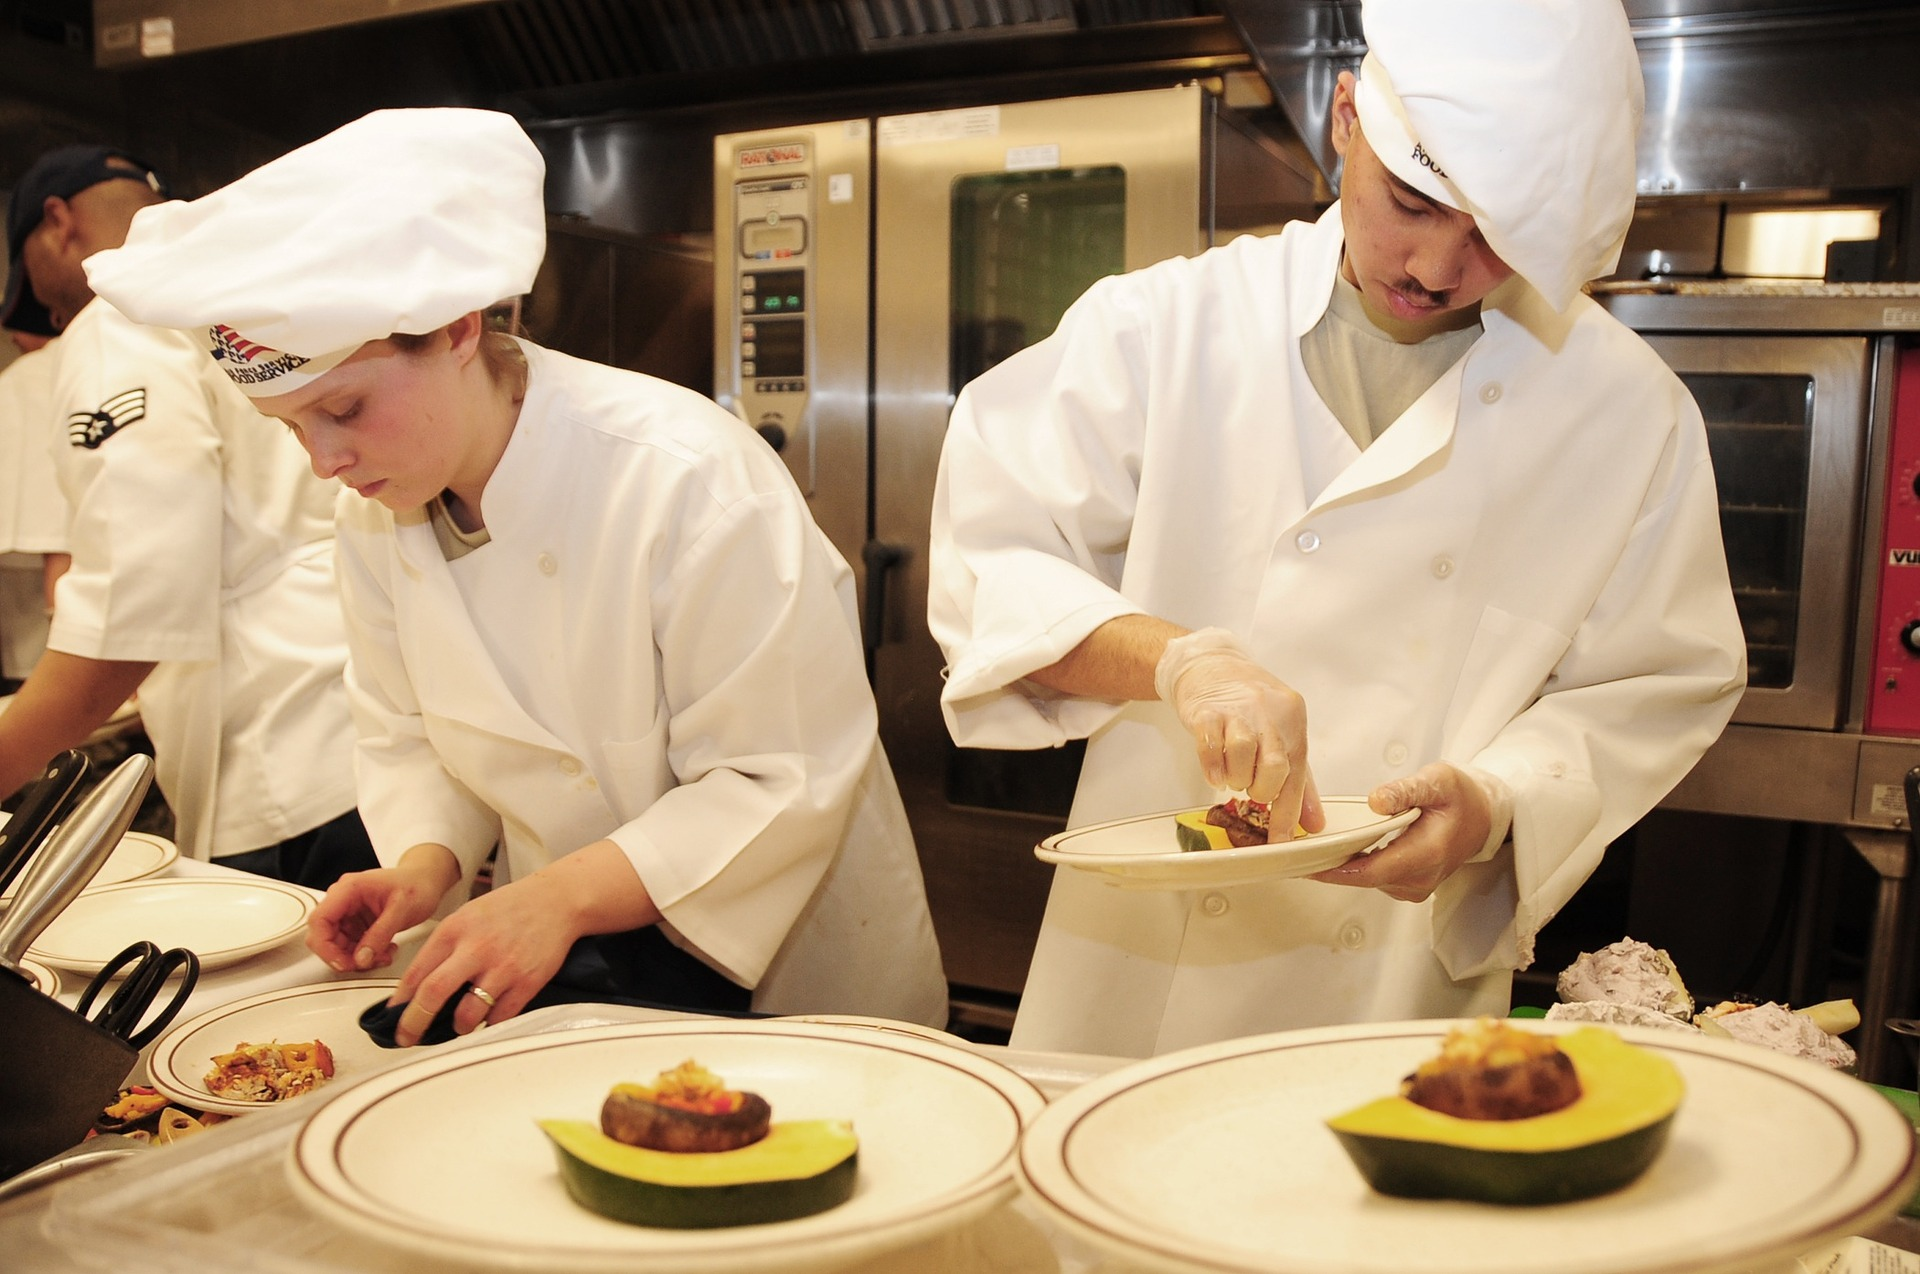 Two chefs preparing an avocado based dish